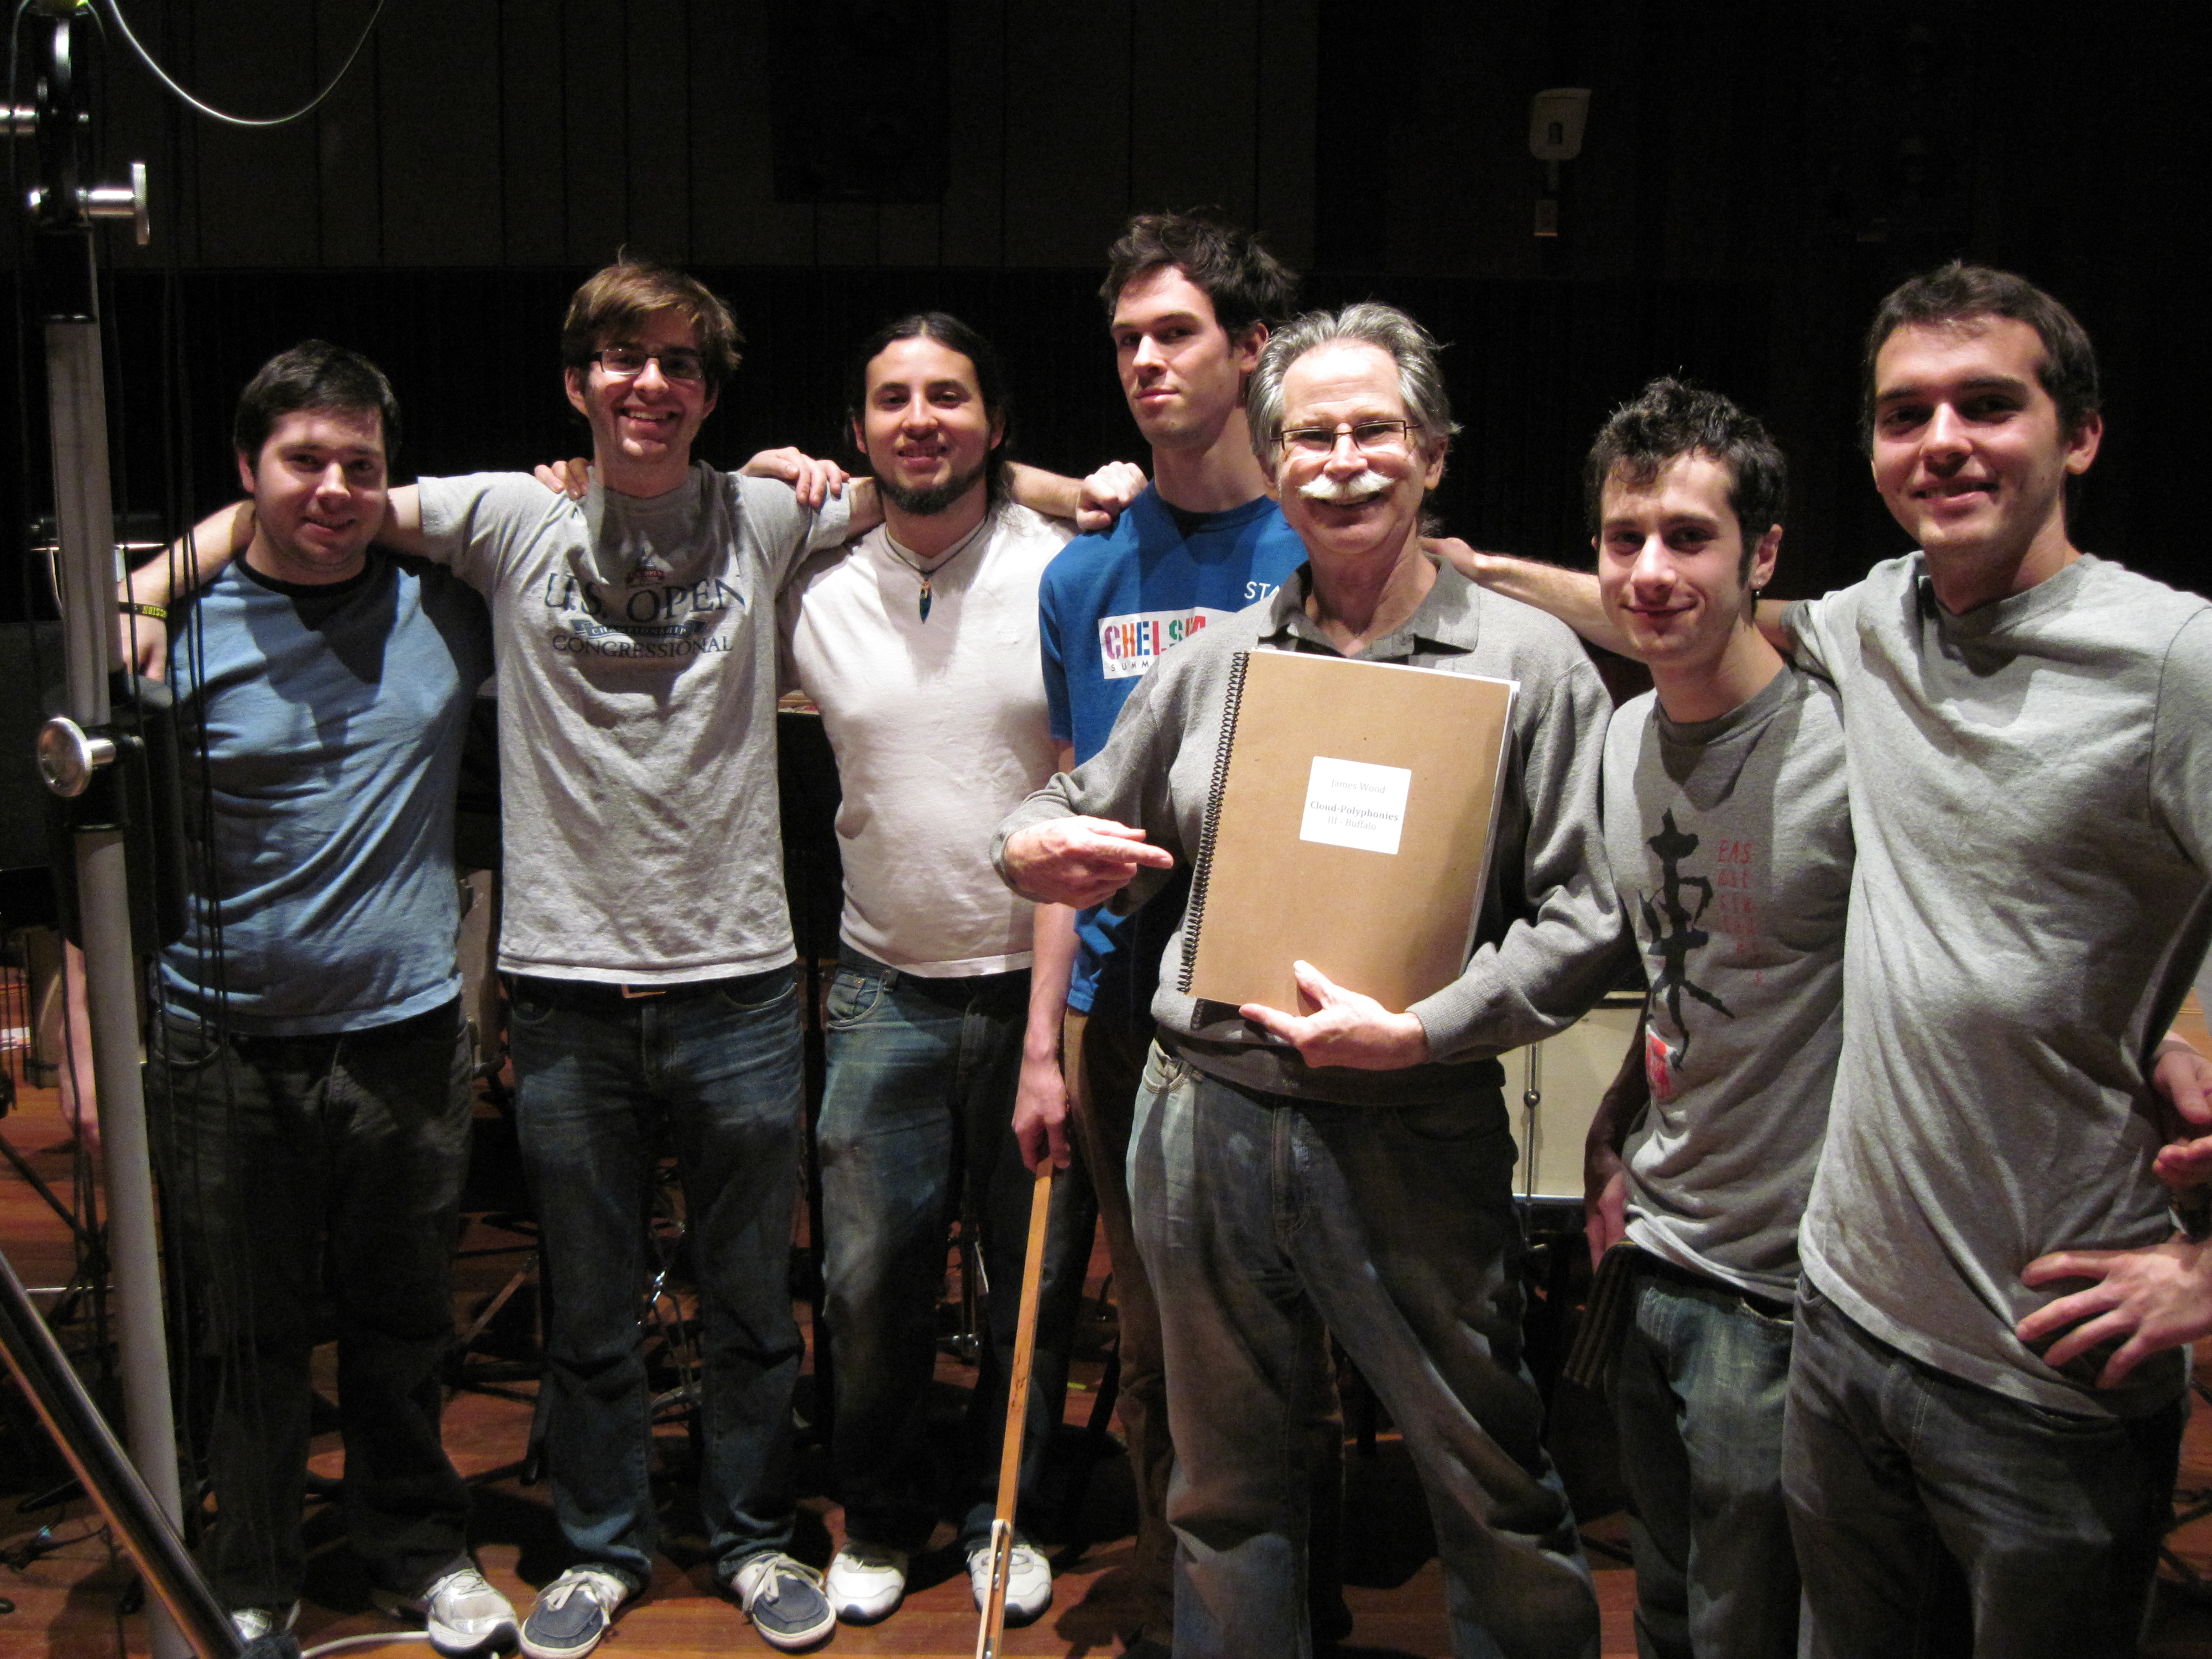 percussion teacher with students